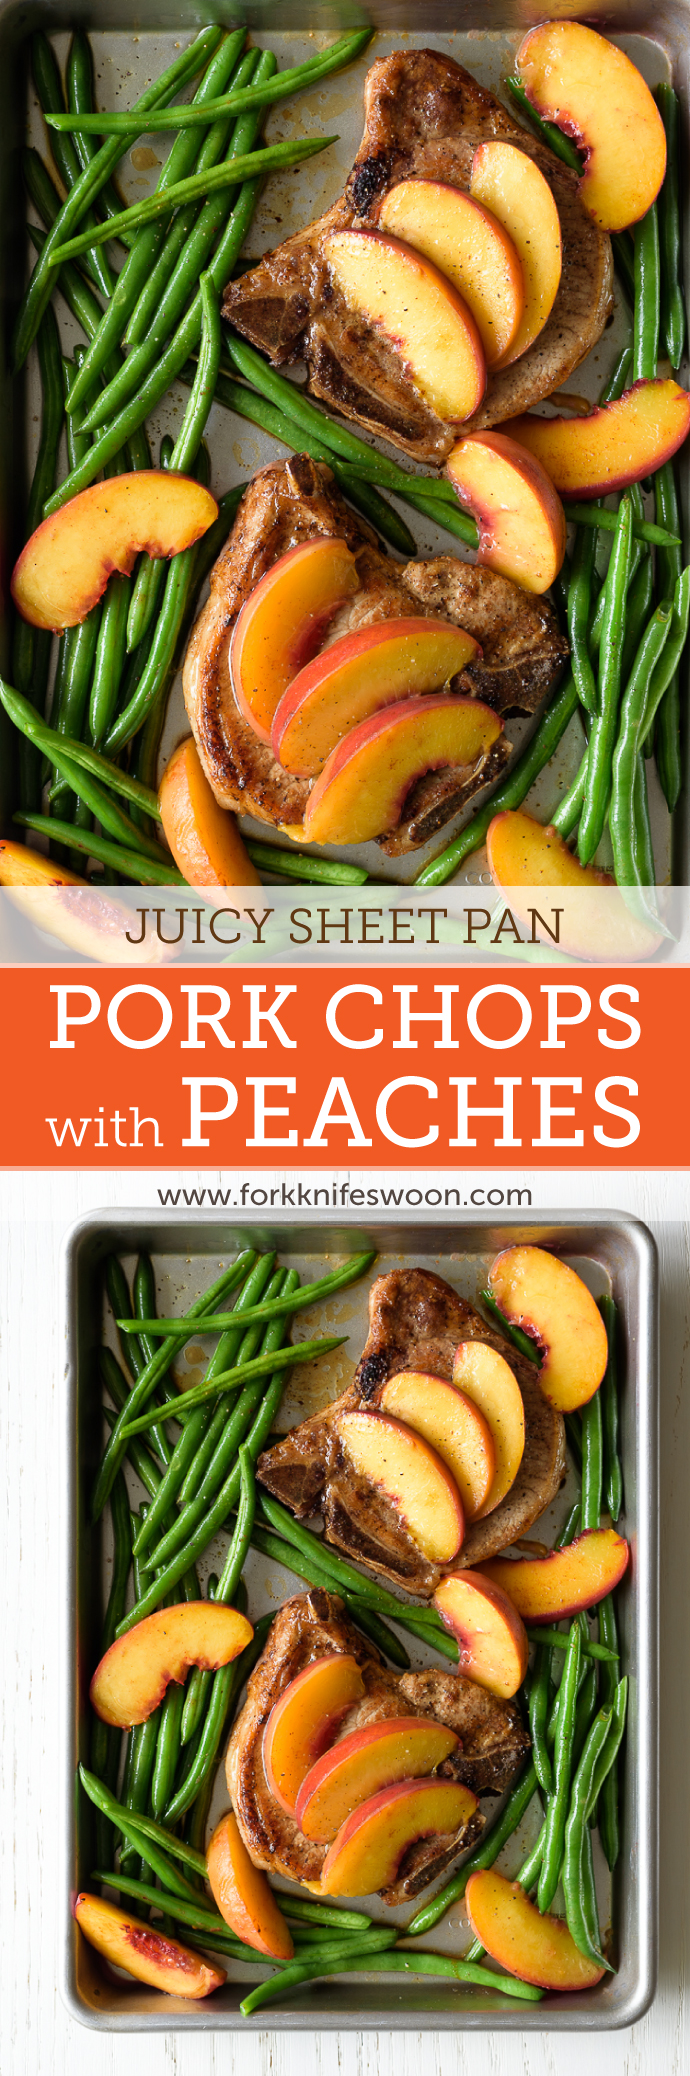 Juicy Pork Chops with Peaches via forkknifeswoon.com | @forkknifeswoon